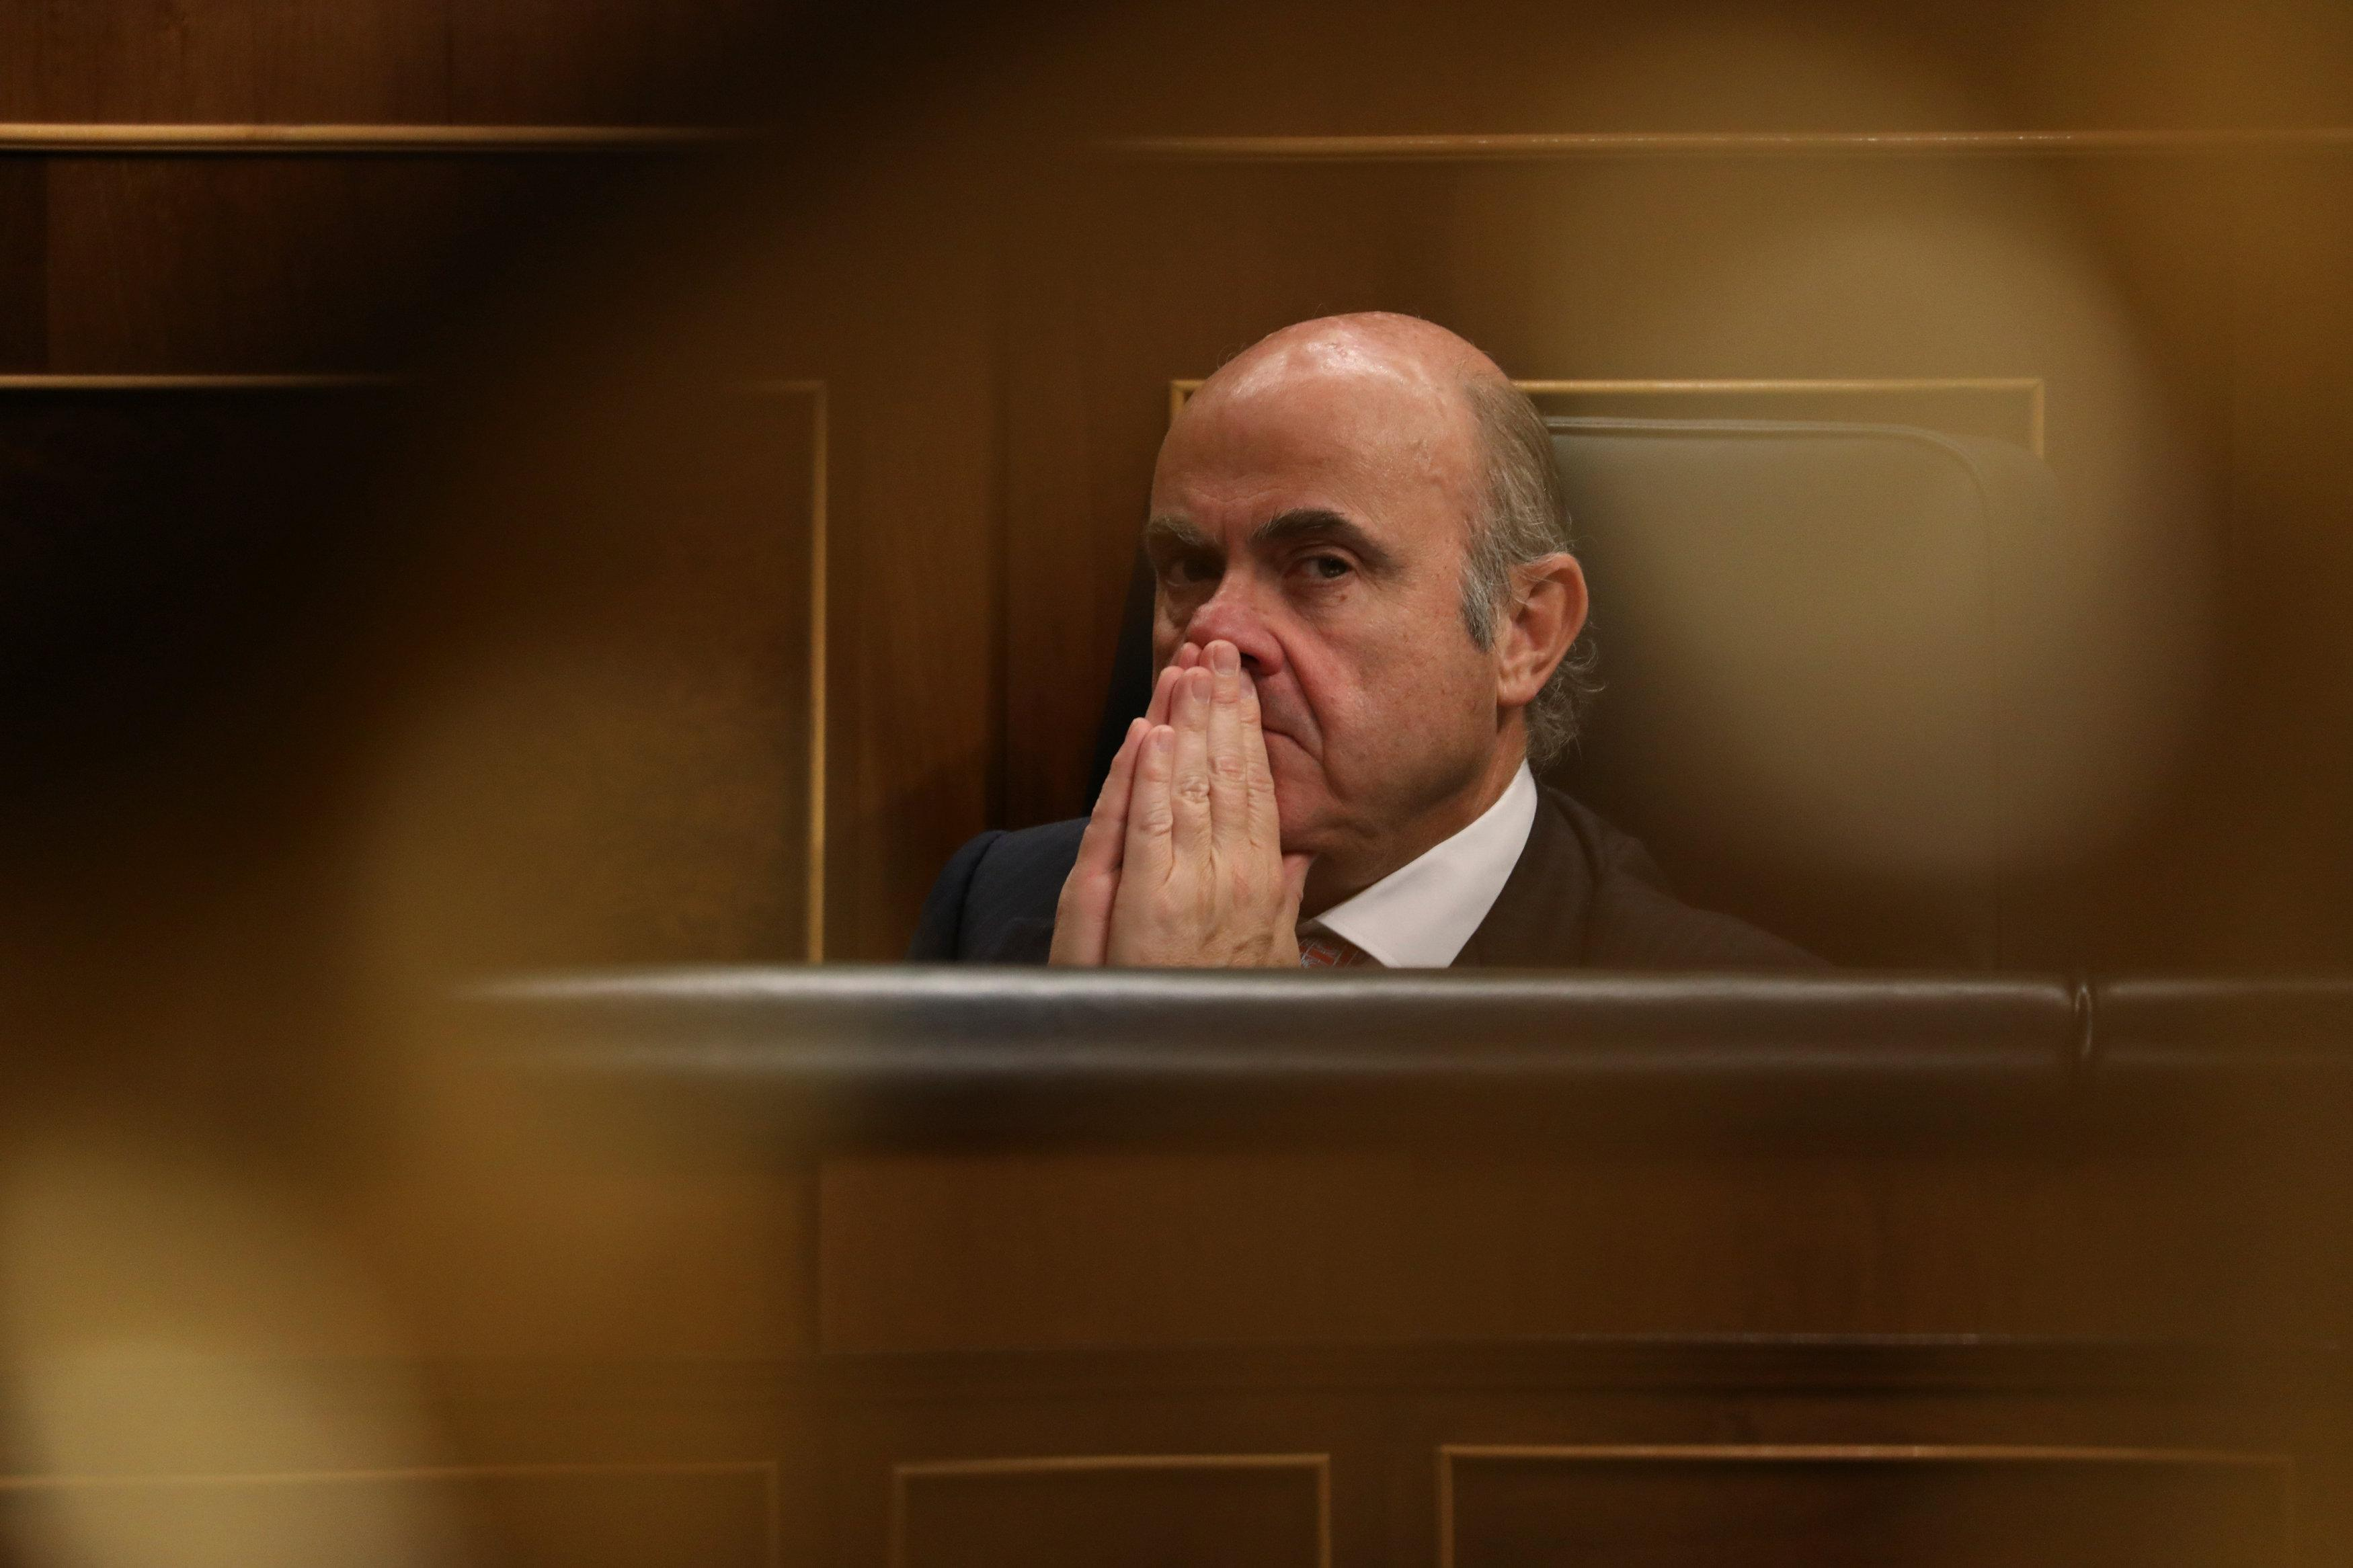 Spain's Economy Minister Luis de Guindos attends a plenary session at Spain's Parliament in Madrid, Spain, February 15, 2018. Susana Vera